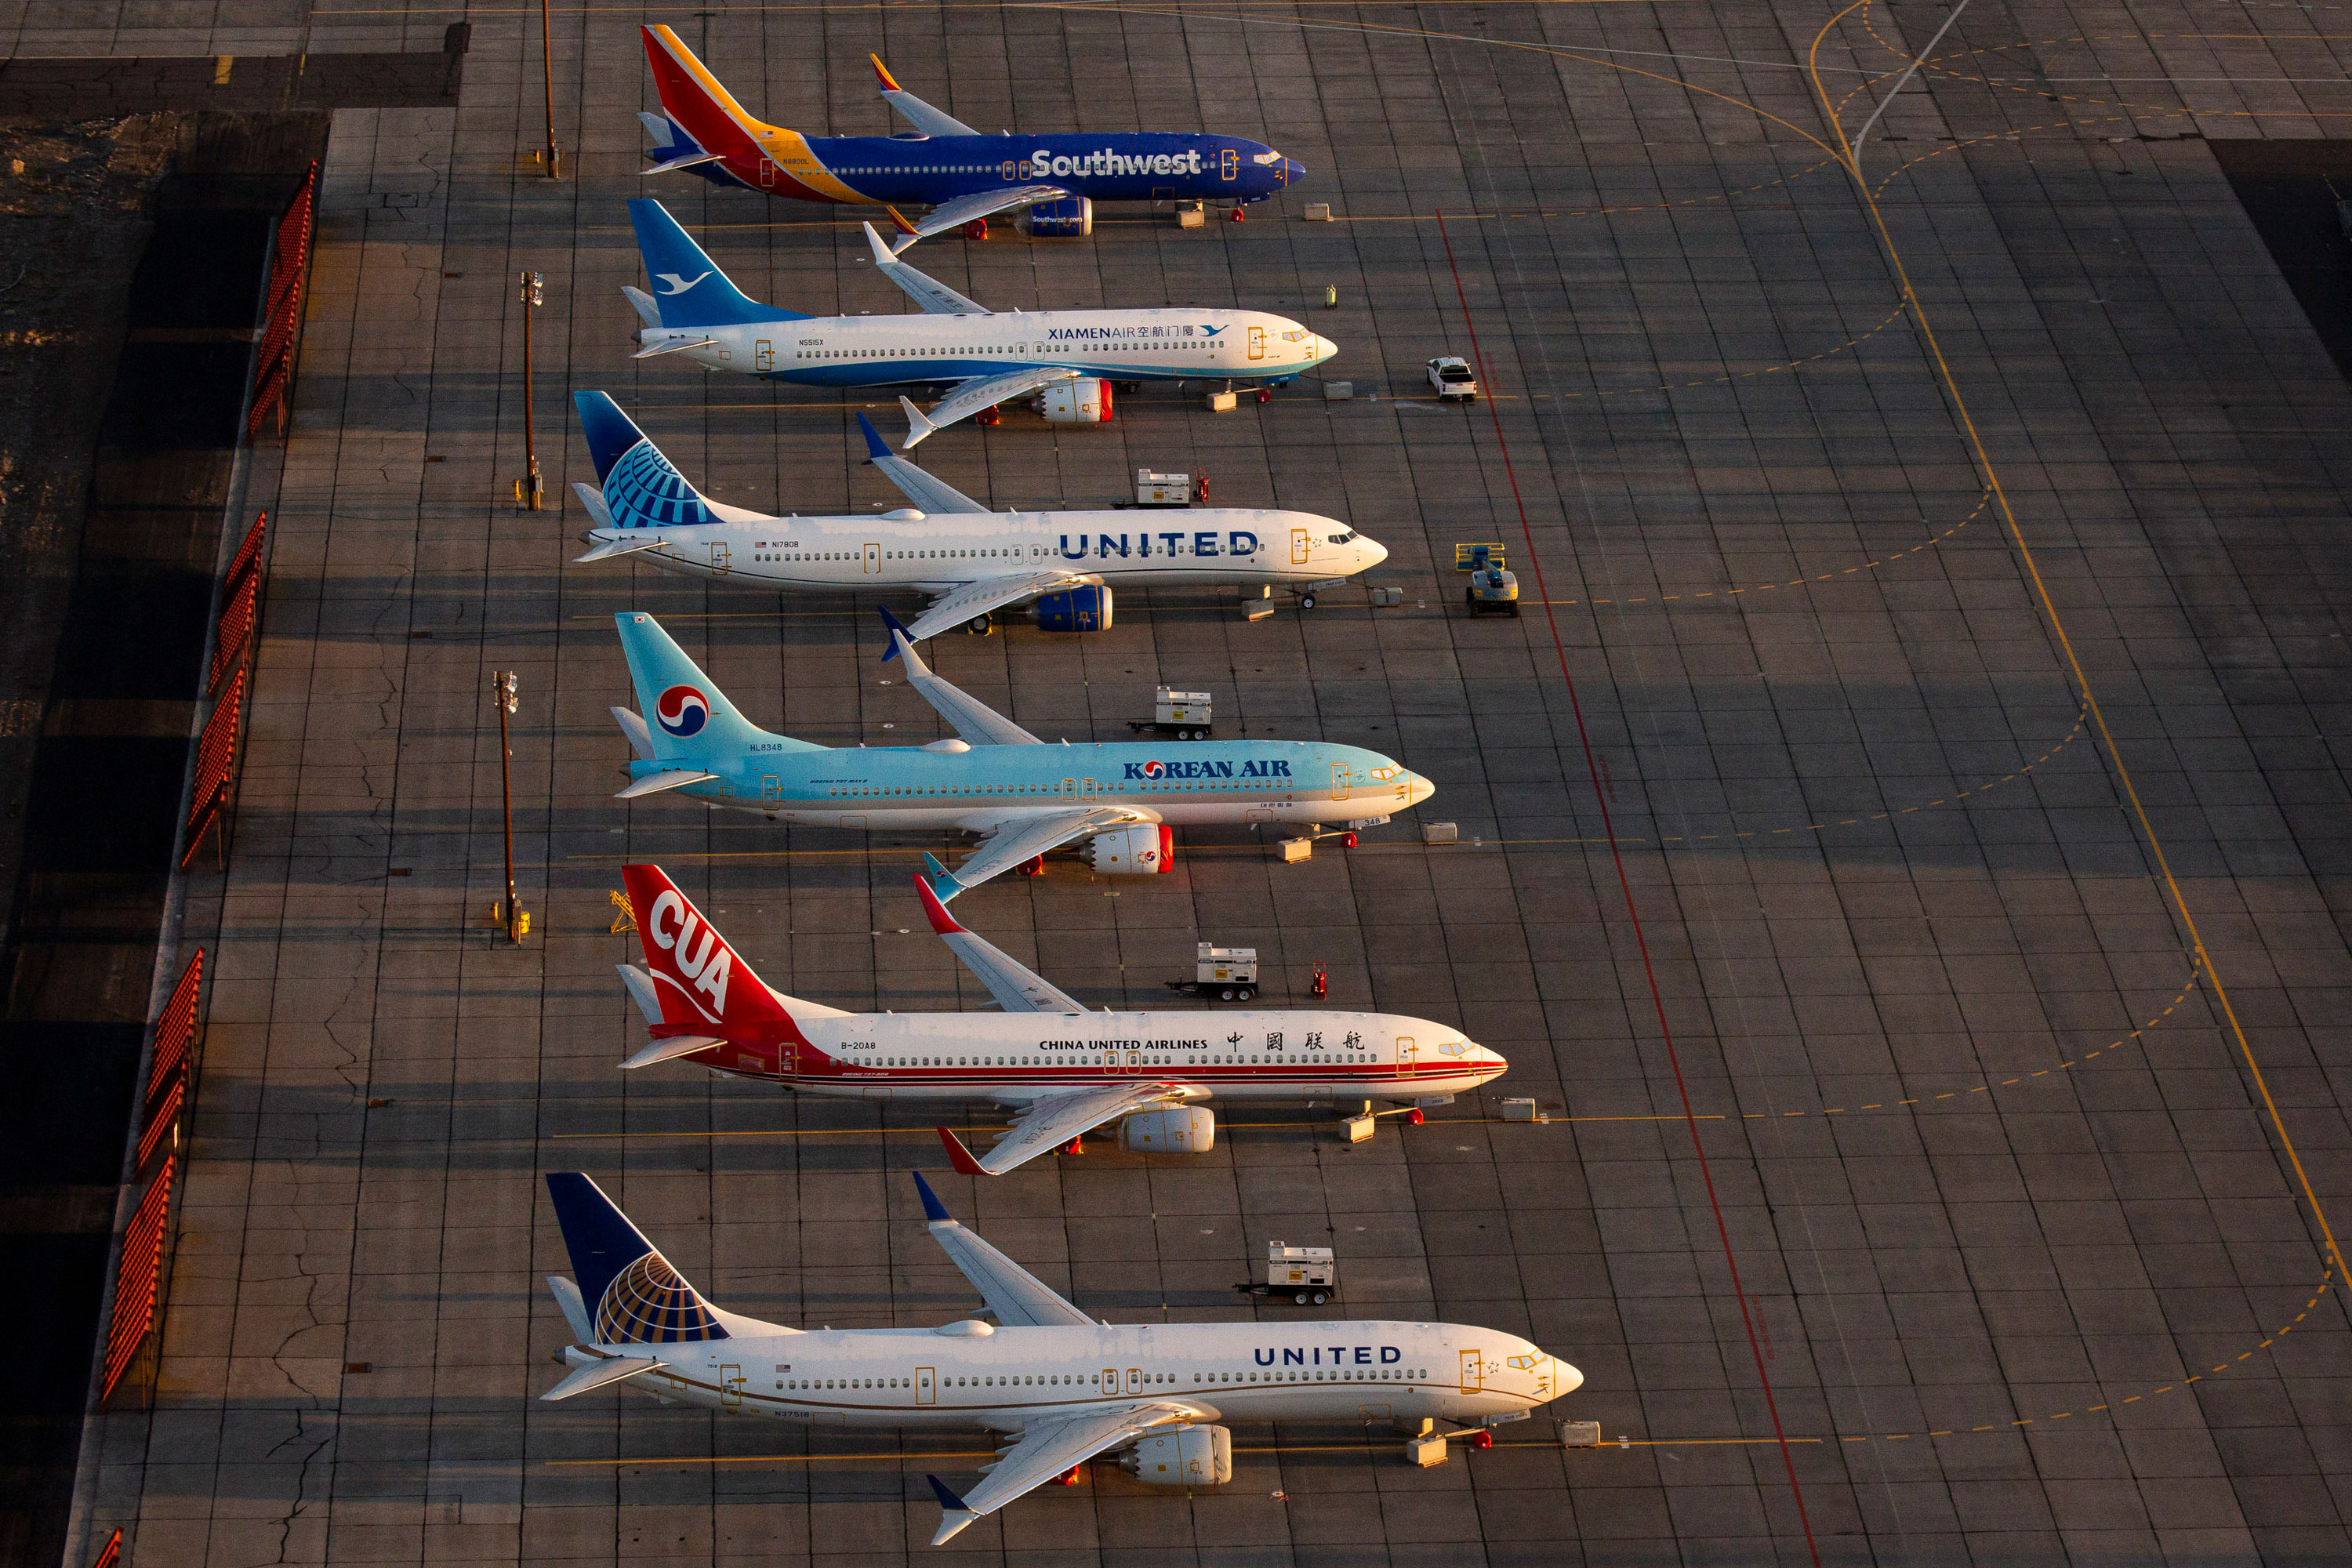 Boeing discovers issue with 737 Max flight computers, source says